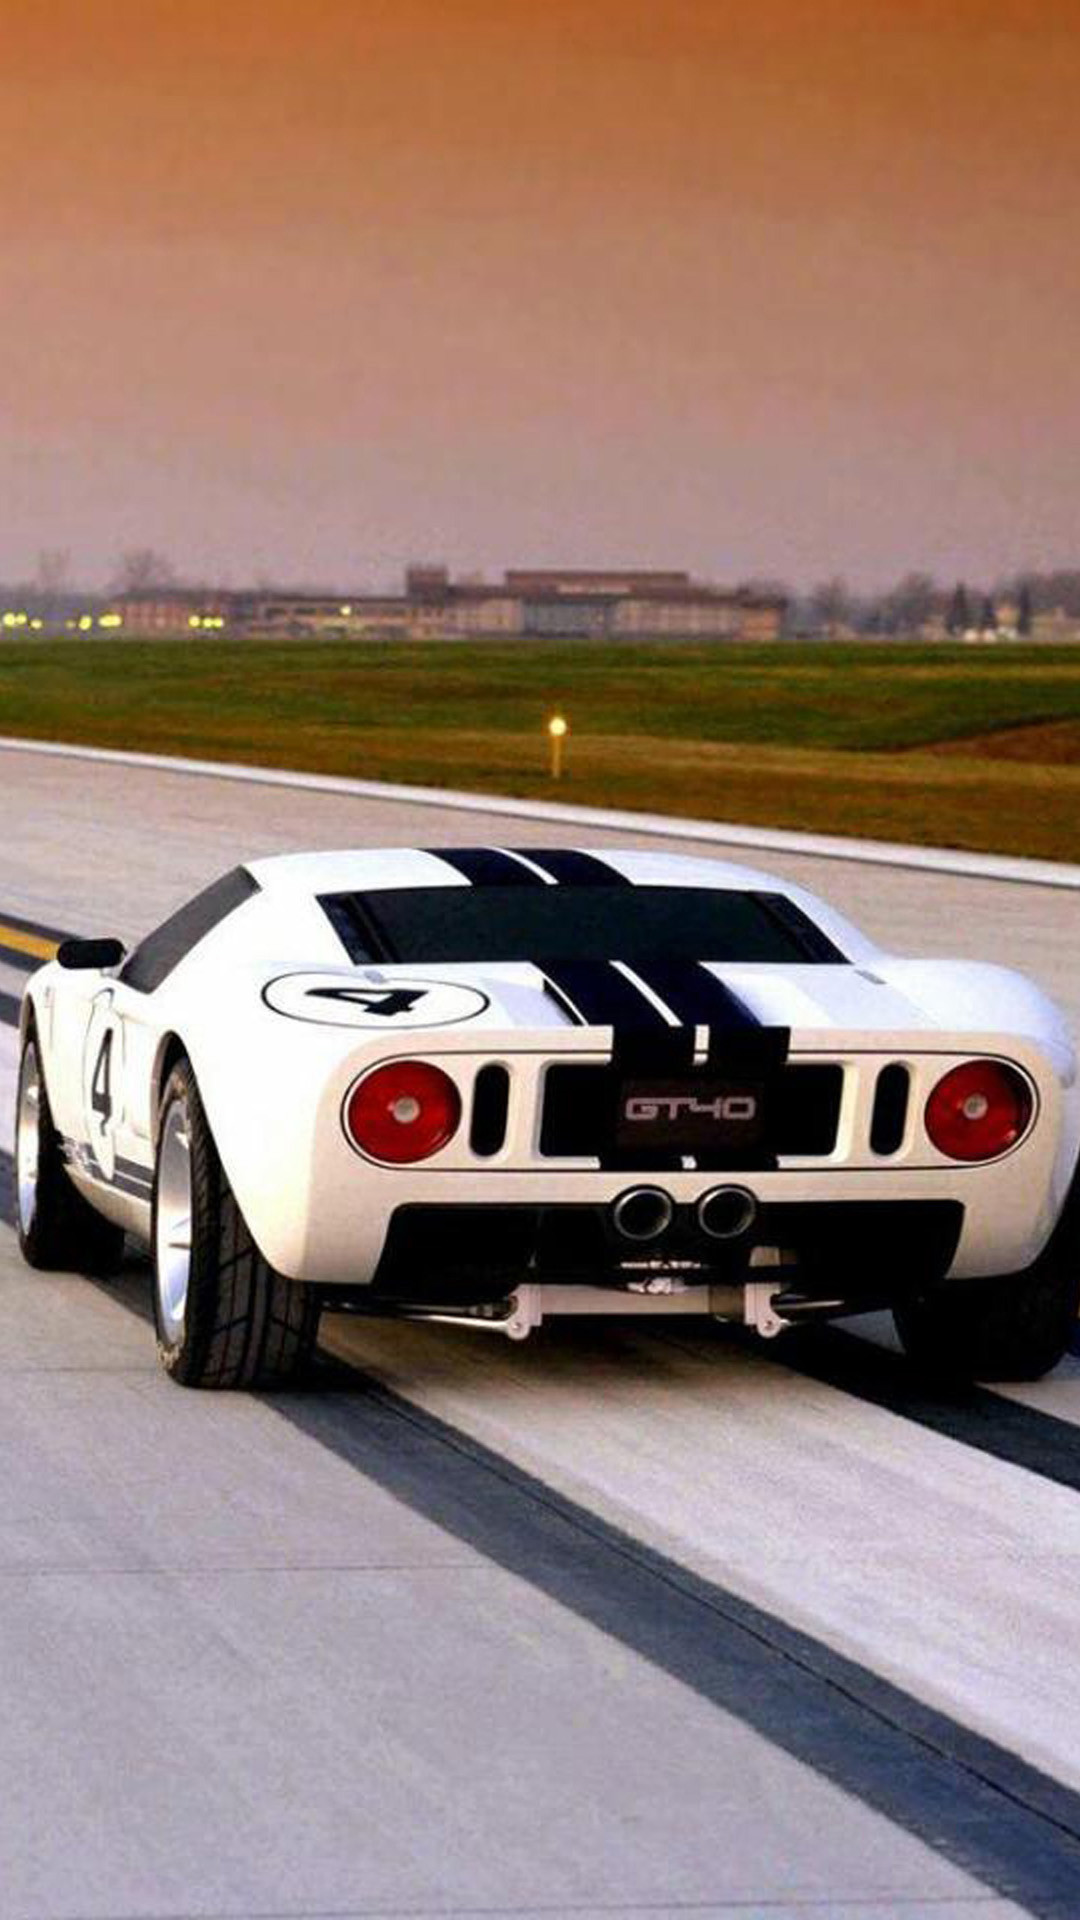 1080x1920 ford gt40 hd wallpaper iphone 6 plus